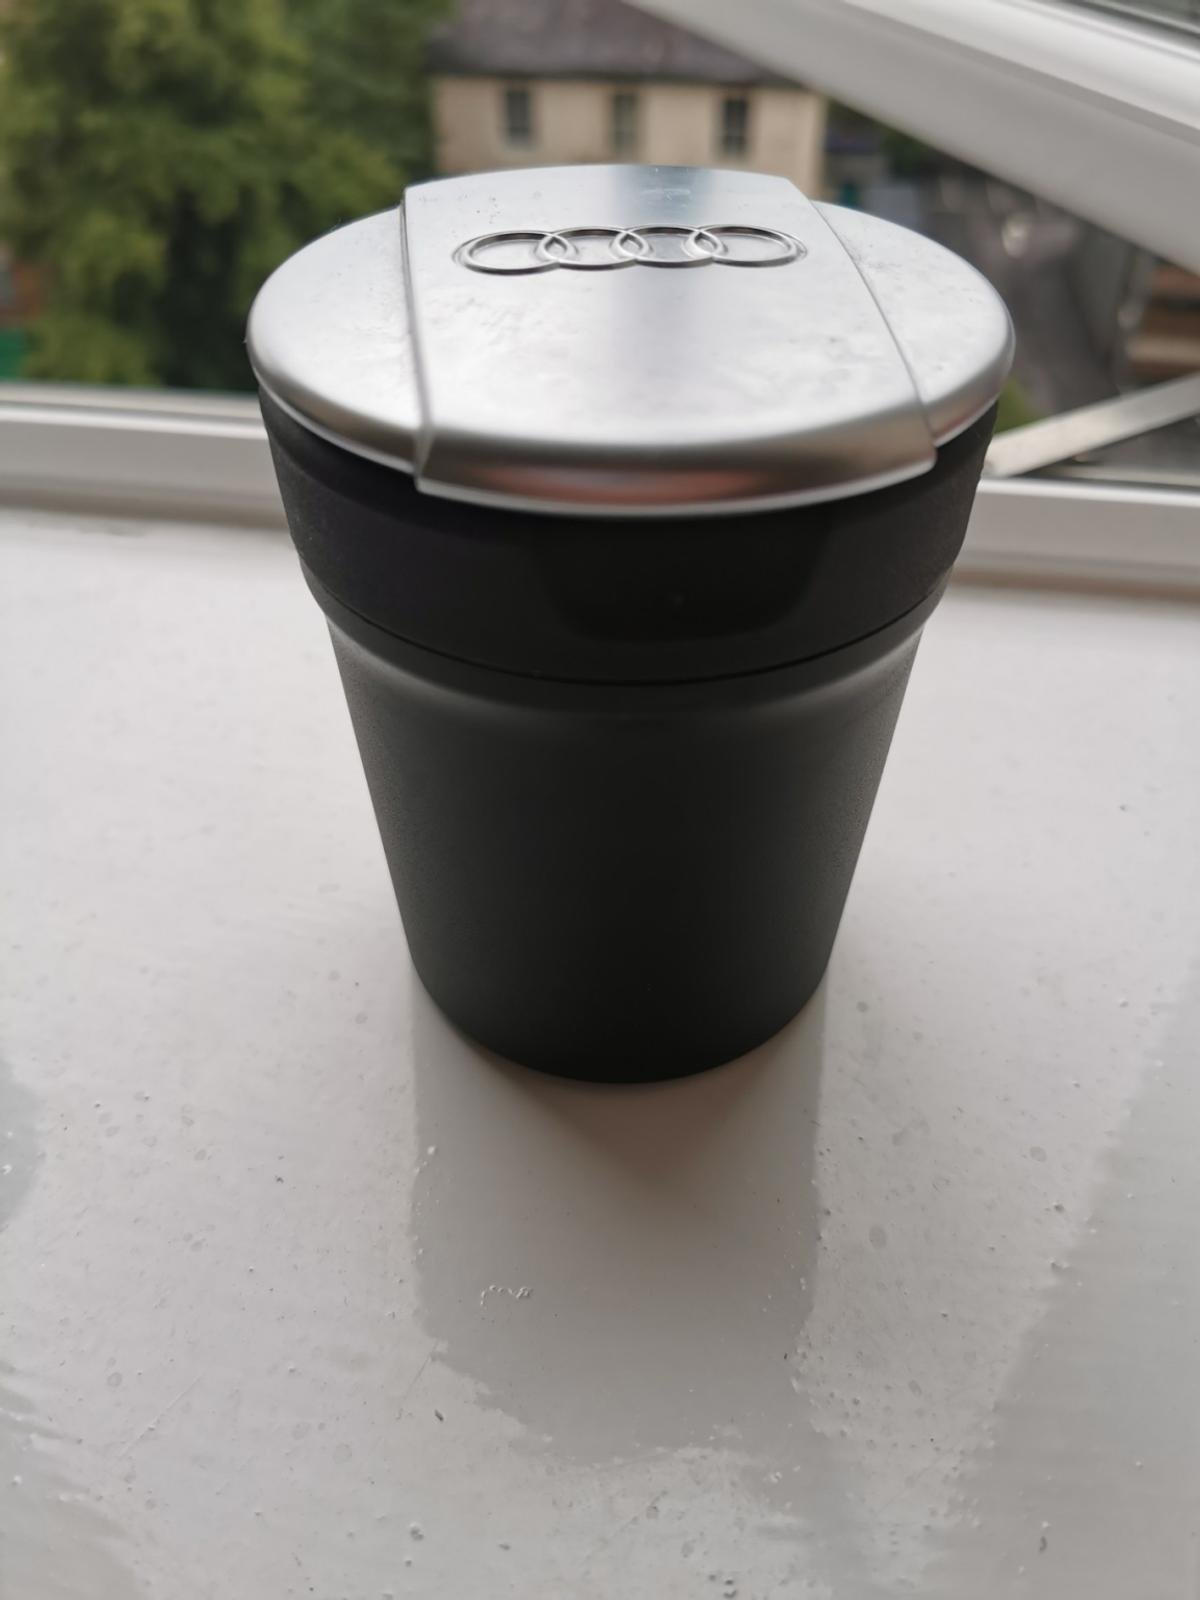 GENUINE AUDI ASHTRAY COIN HOLDER STORAGE POT FITS IN CUP HOLDER